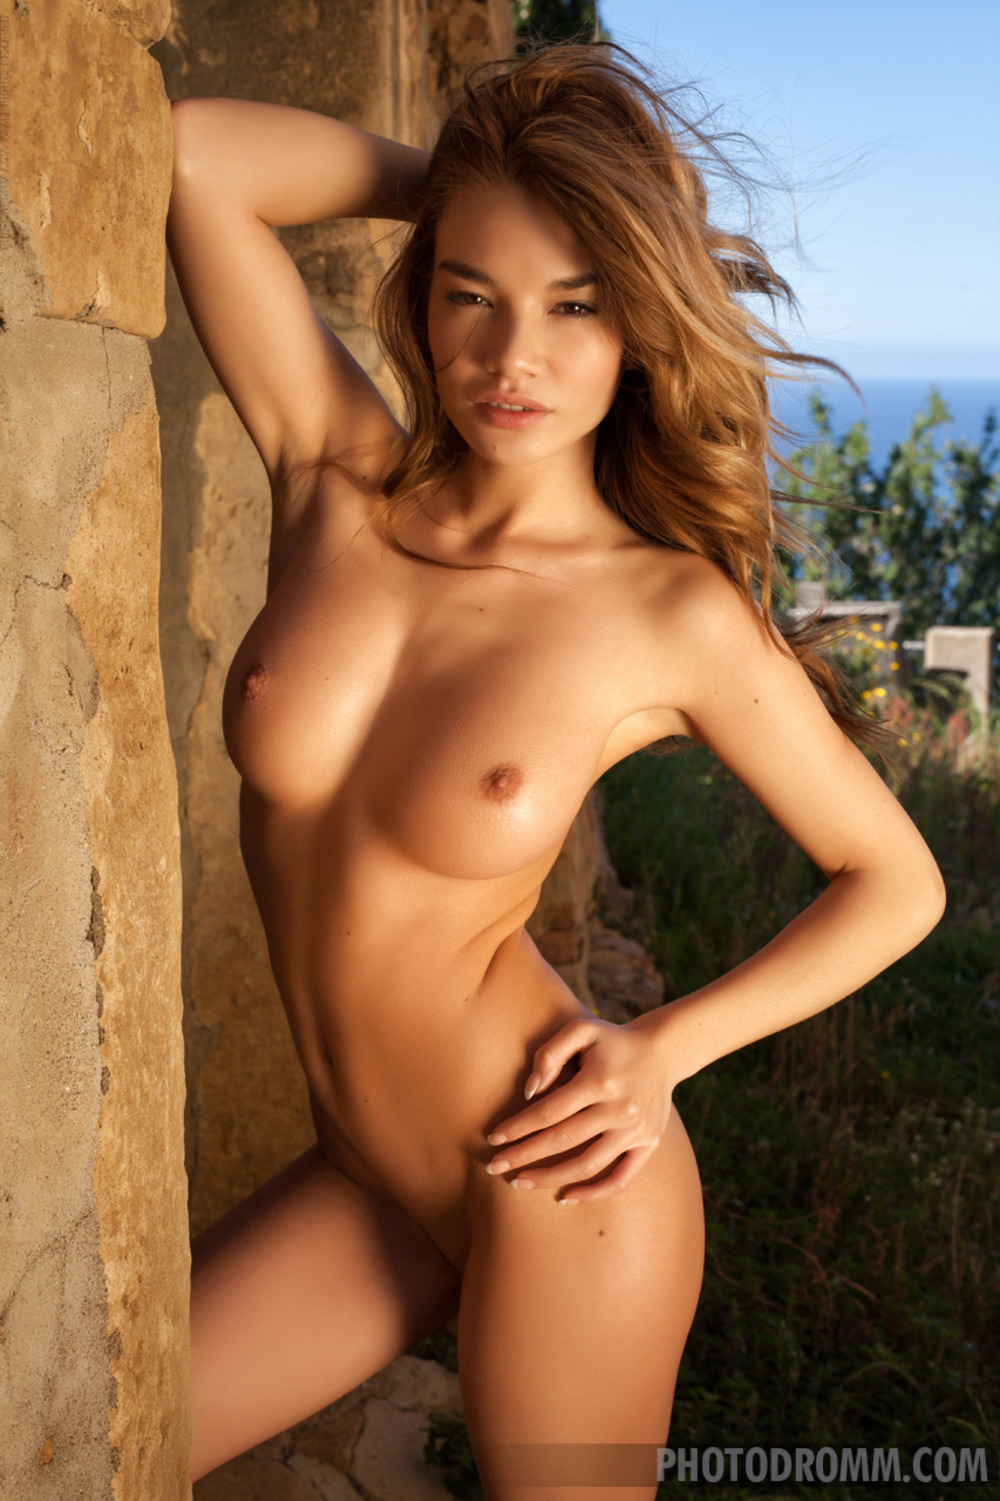 Shyla Jennings And Her Glamour Bomshell Friends Is Horny And Kinky Lesbian Action